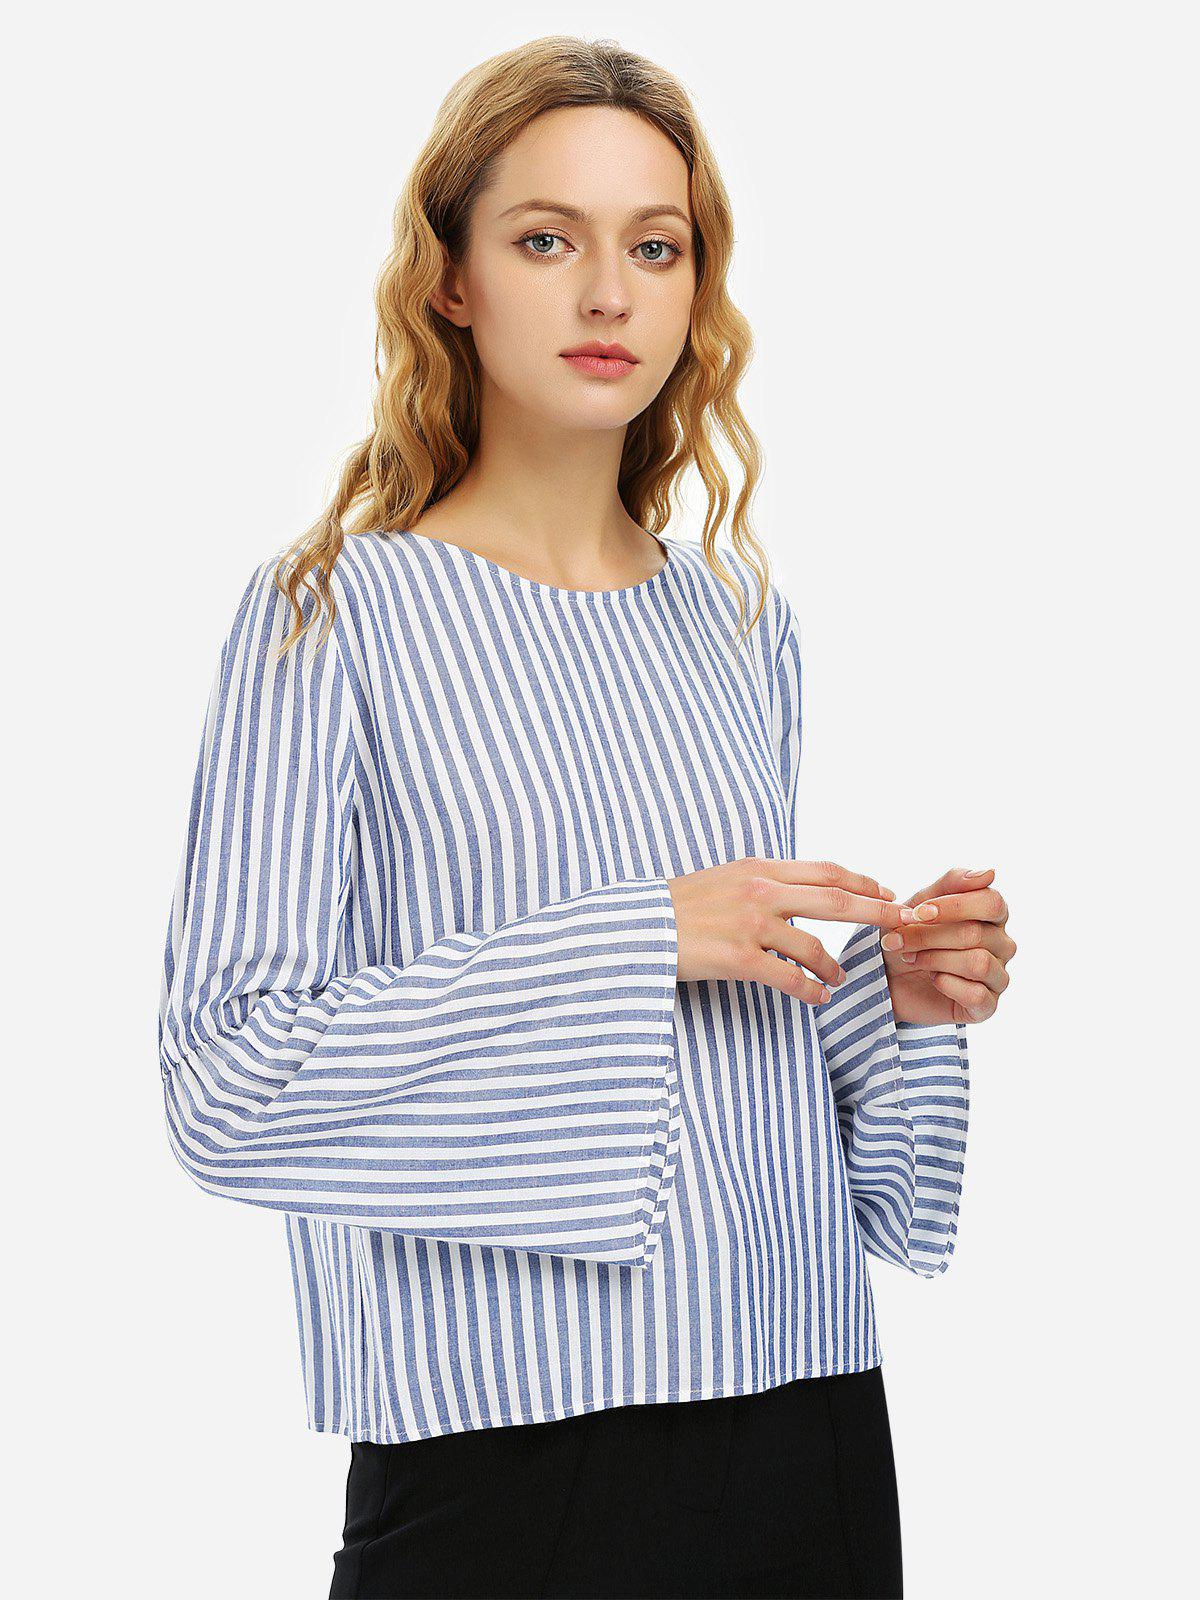 ZAN.STYLE Long Bell Sleeve Striped Blouse Shirt - BLUE WHITE STRIPED L